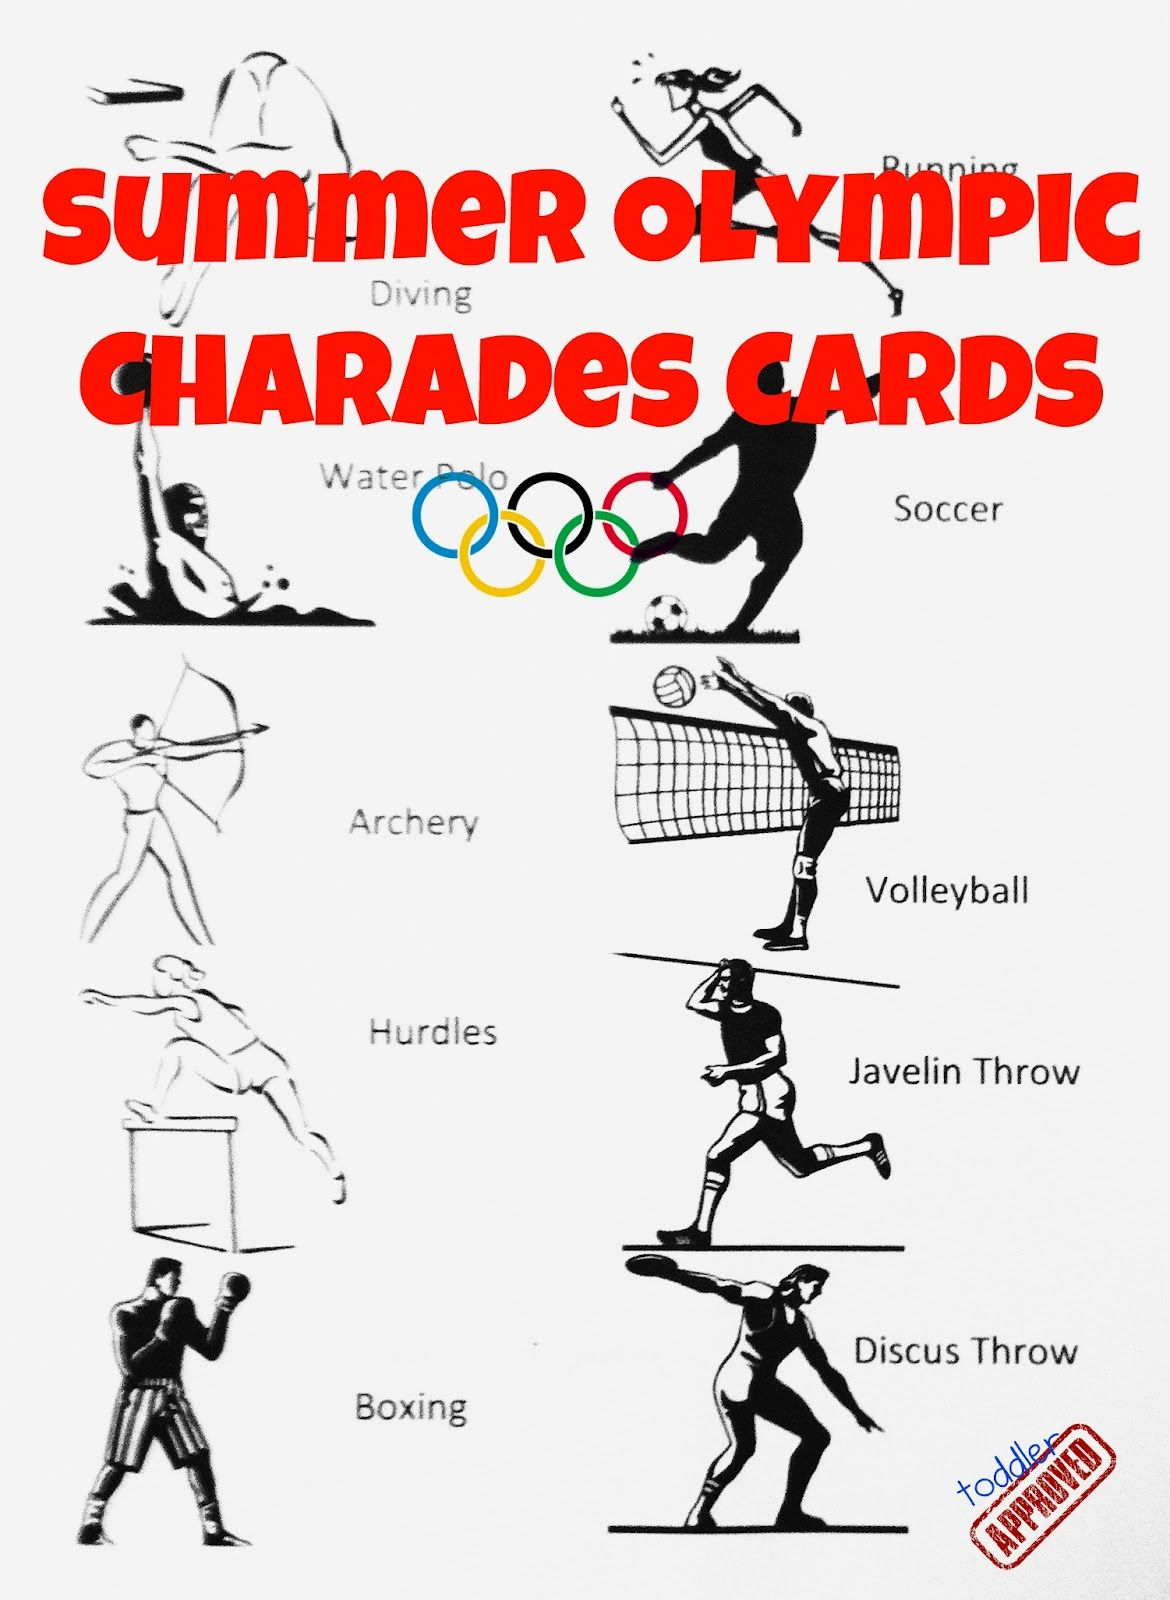 Summer Olympic Charades